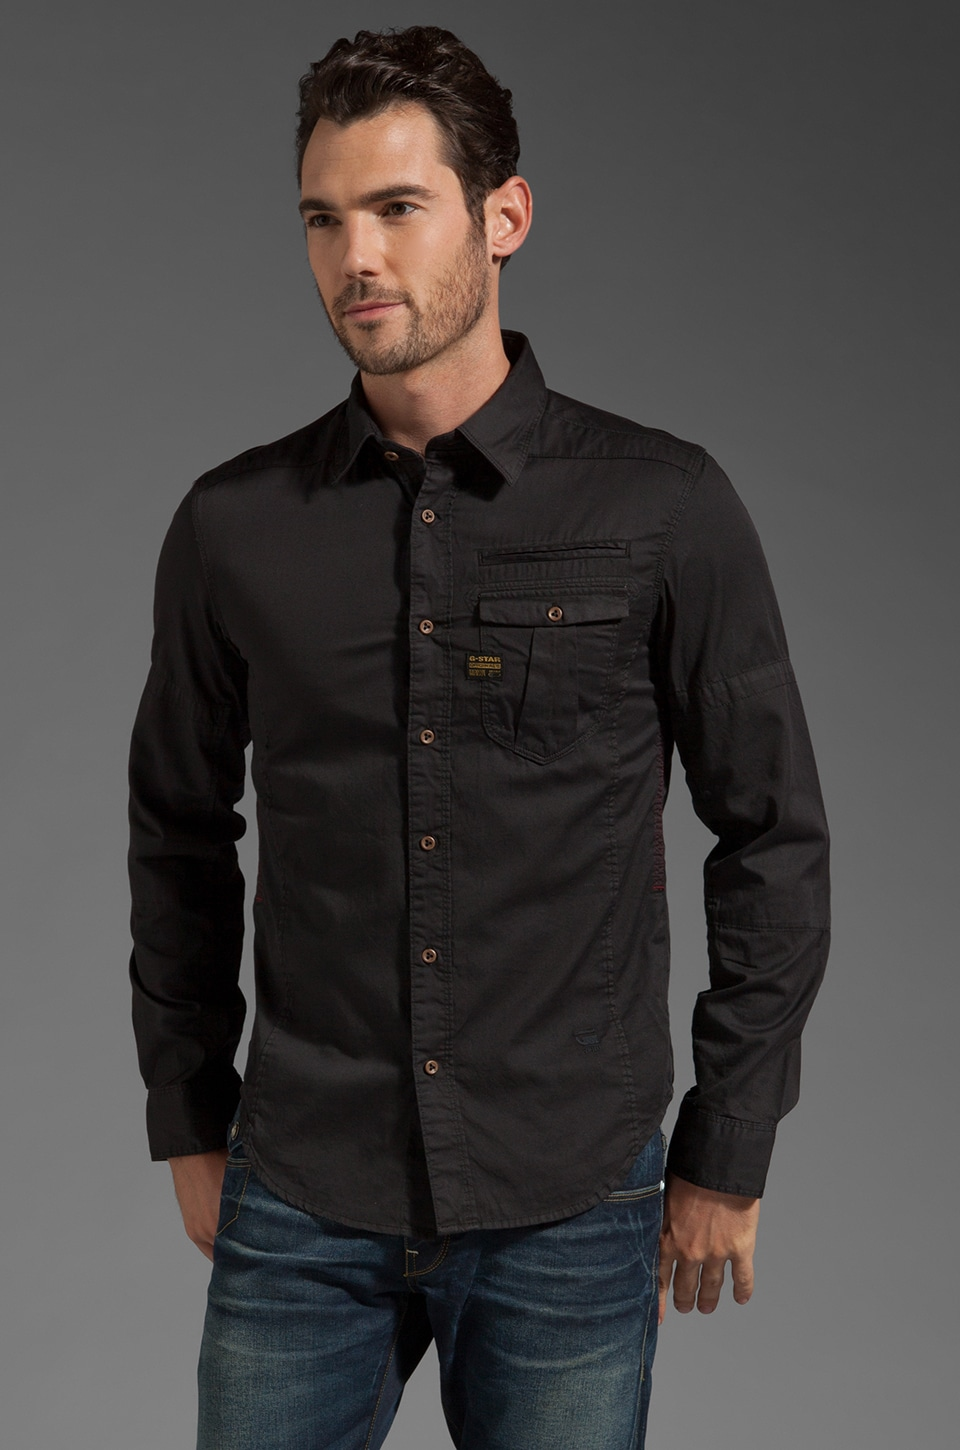 G-Star Craft Long Sleeve Shirt in Black